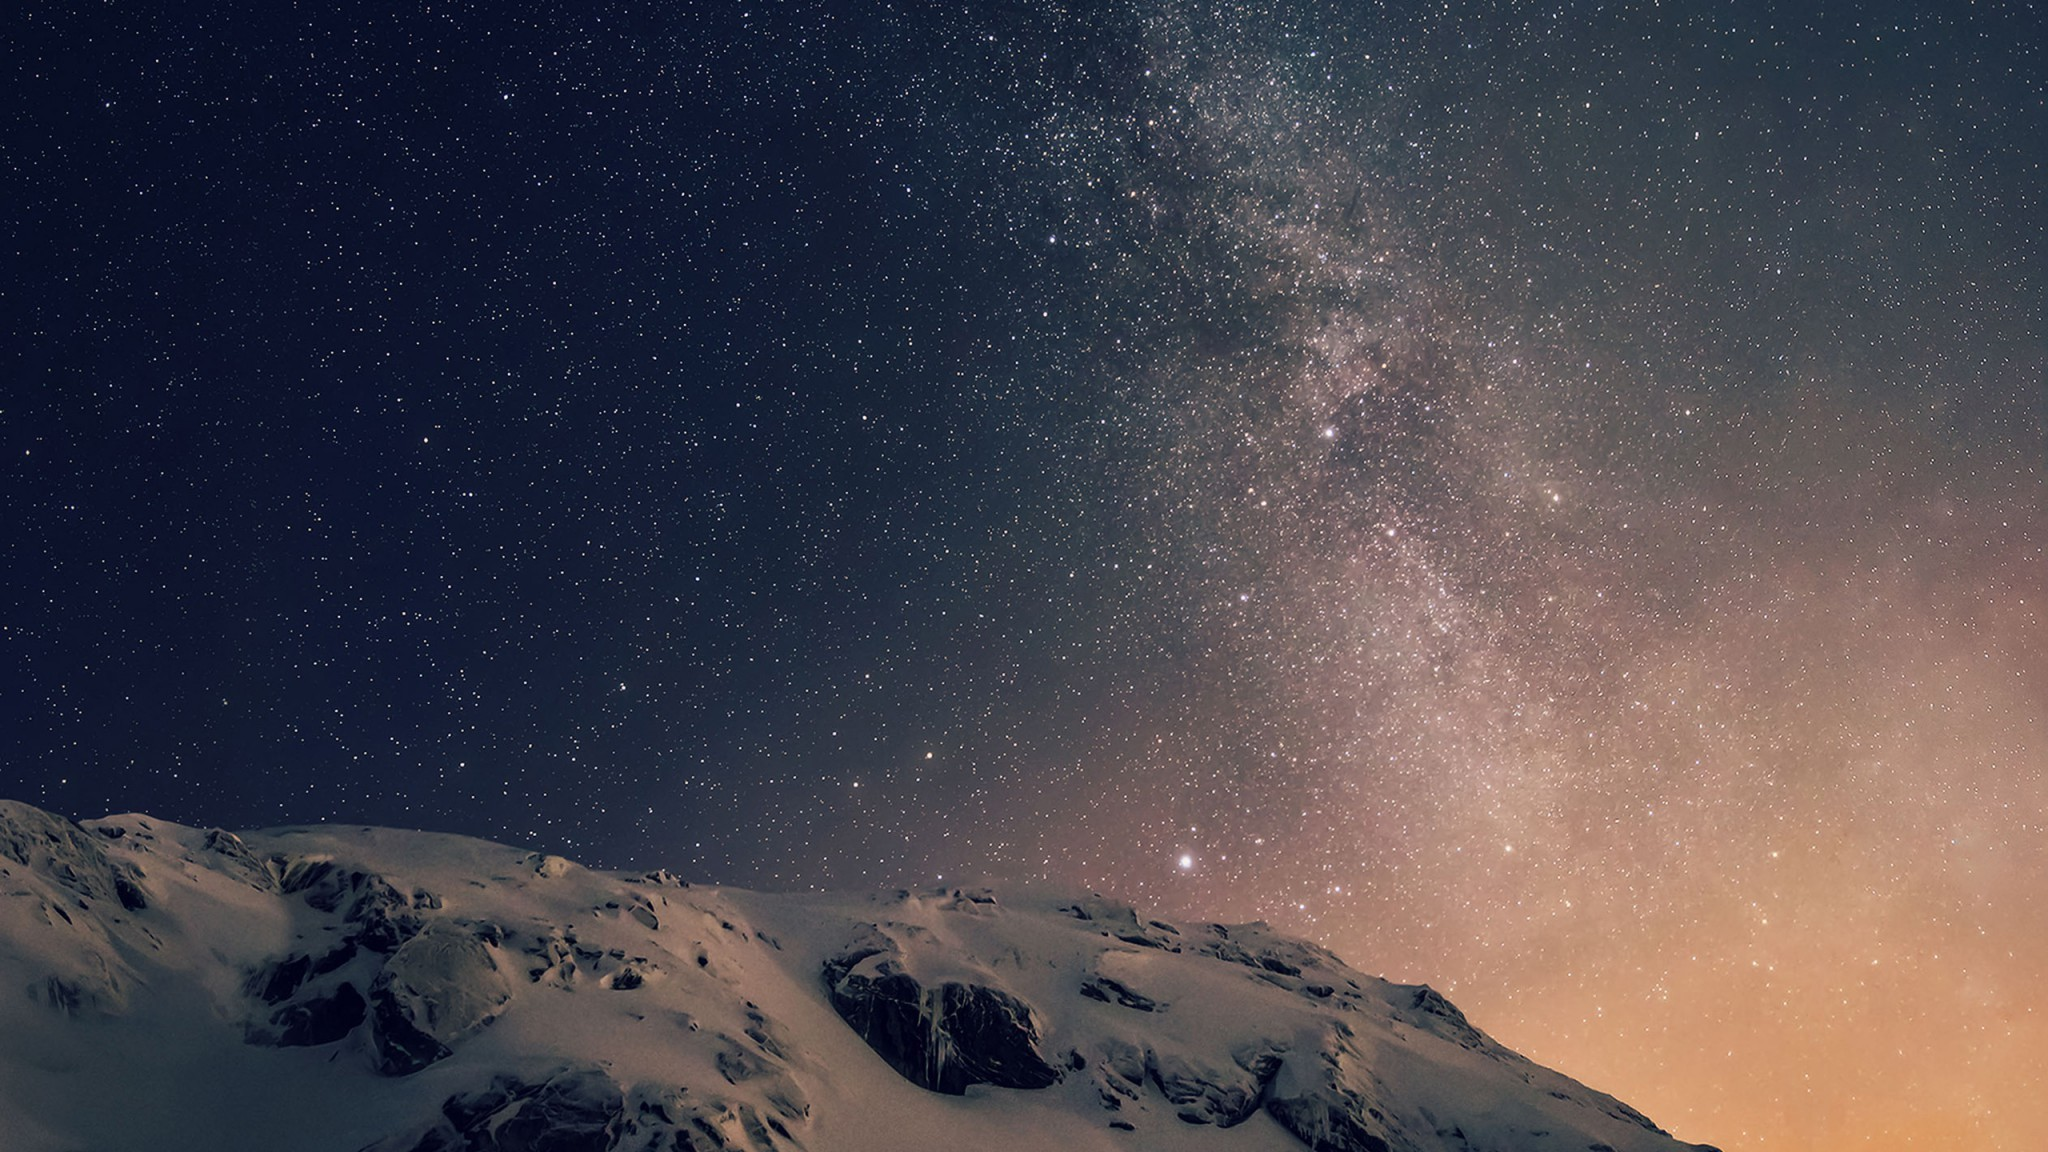 Apple iOS 8 iPhone 6 Plus Official Darker Starry Night Wallpaper